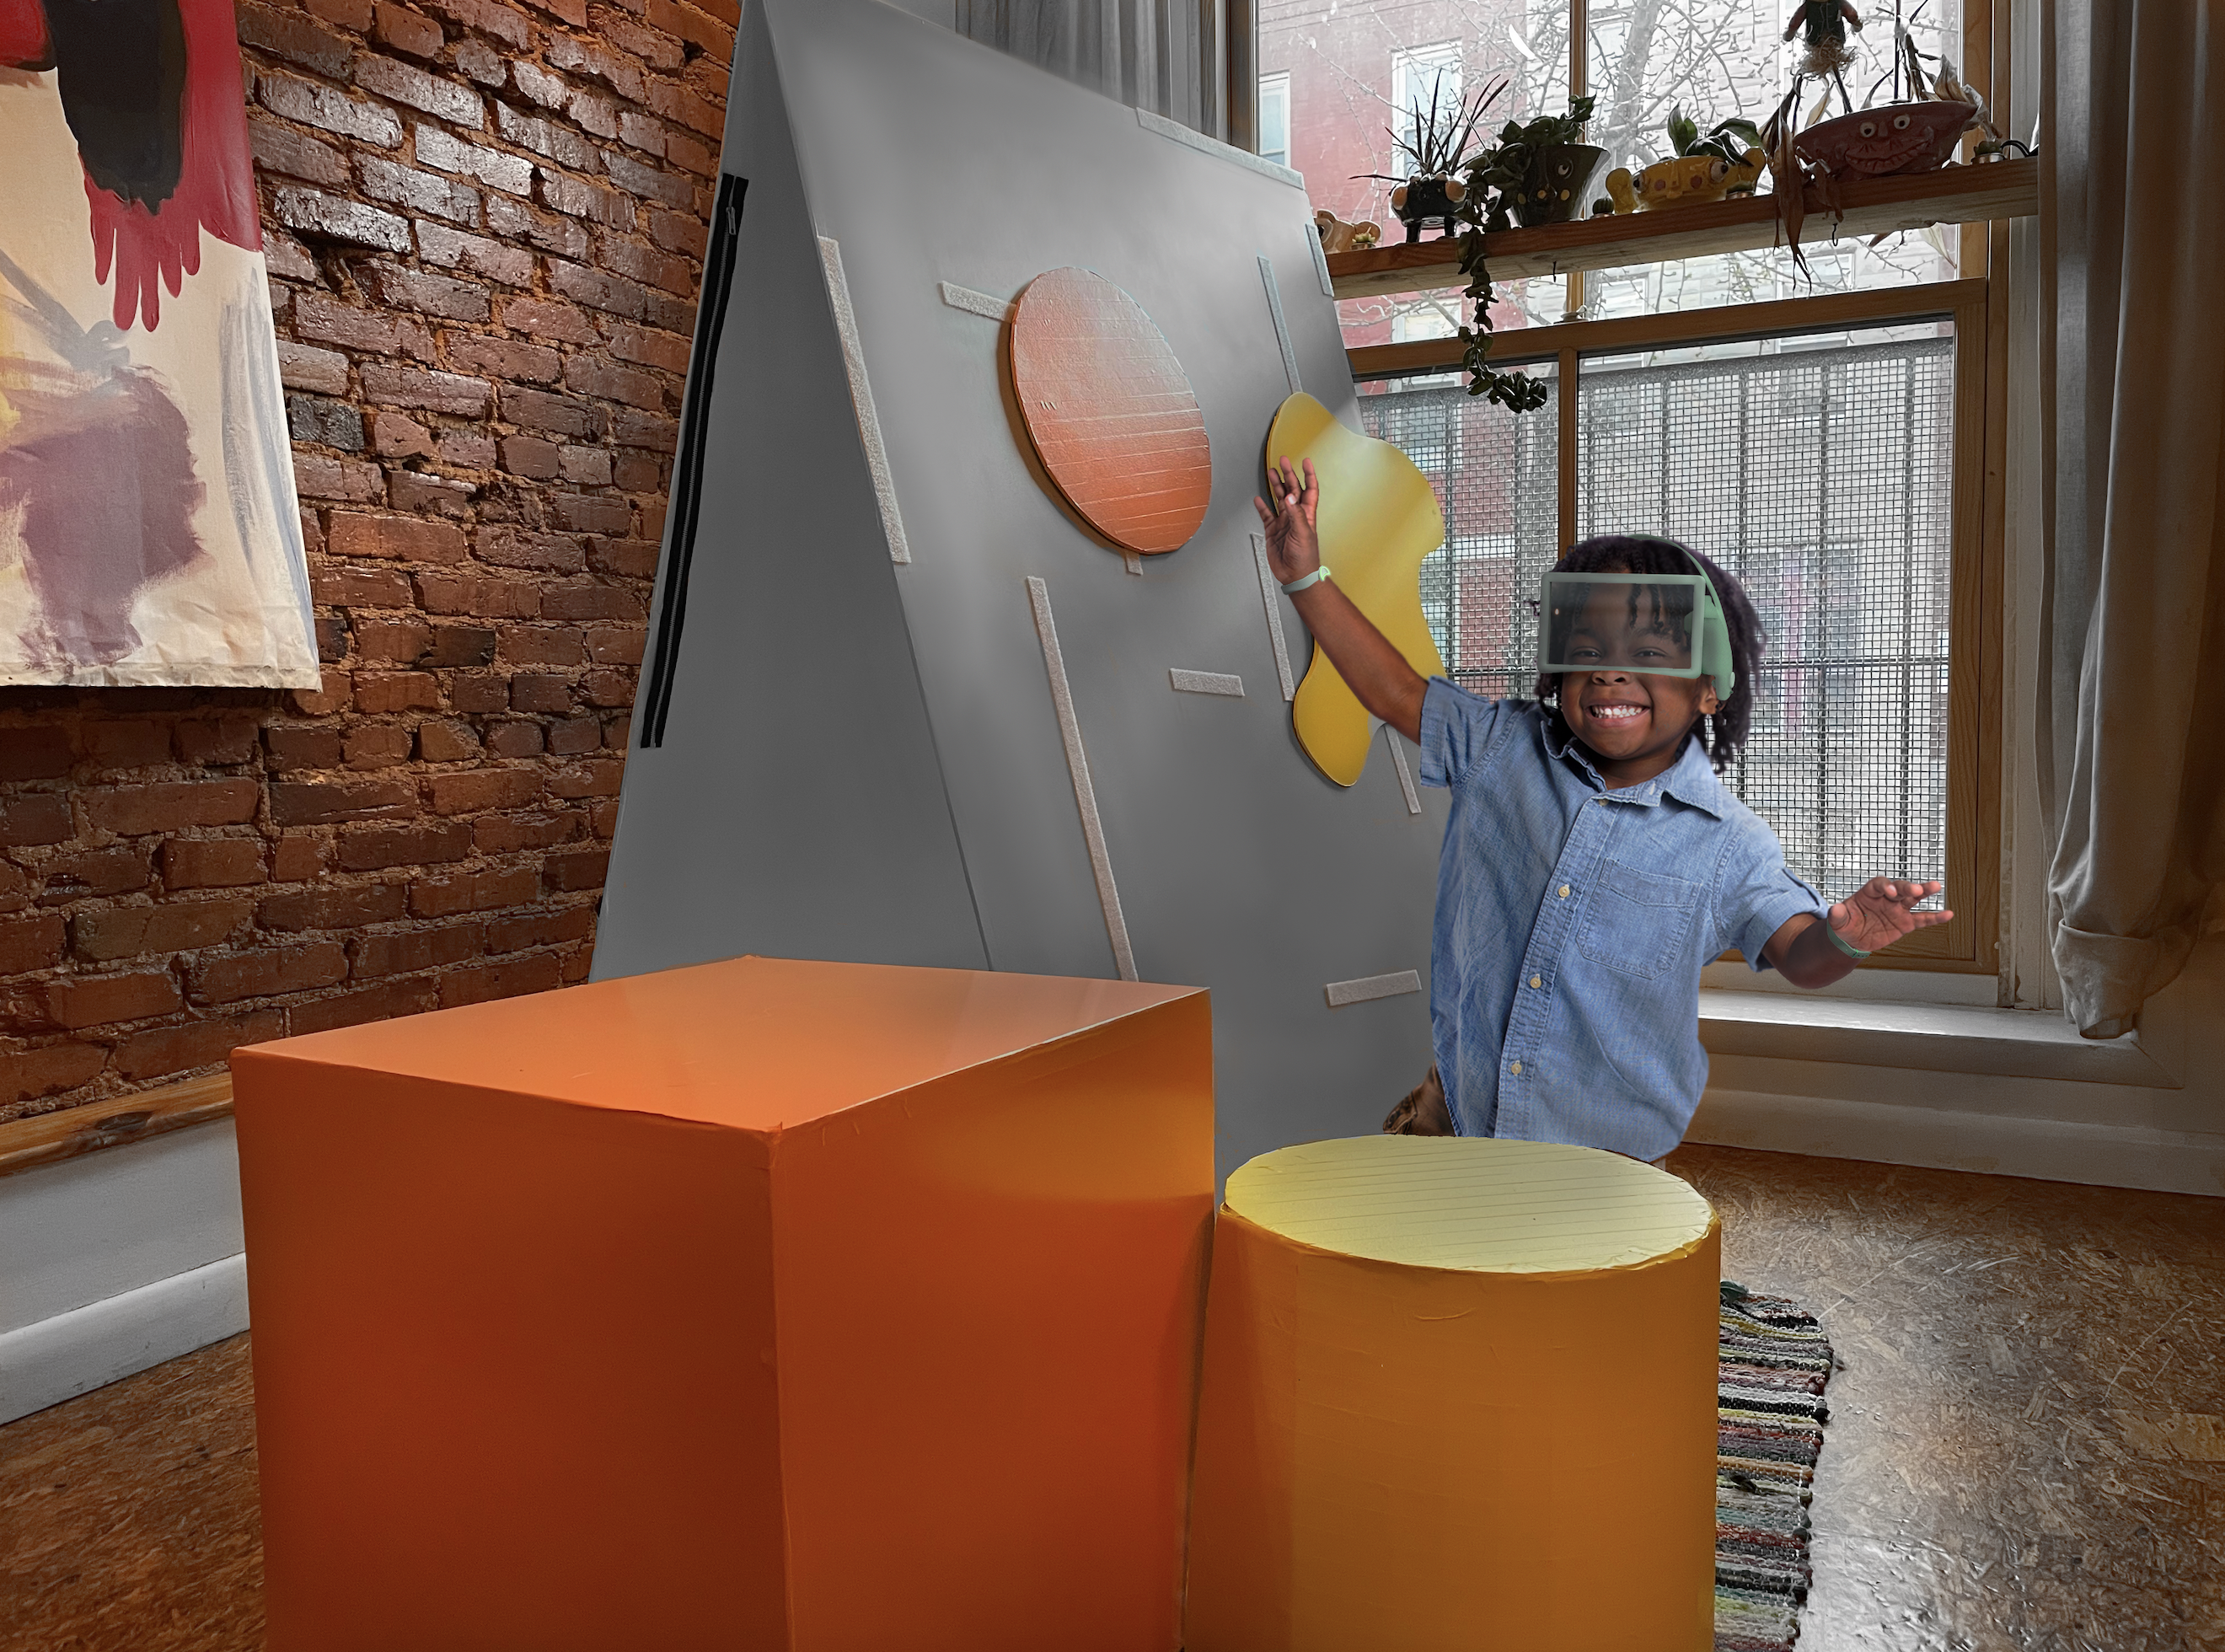 Imers is a therapeutic device that is a playful experience that helps increase oxytocin level in the brain by engaging children in physical movement, sound and visual guided mediation, lateral alternating stimulation-tactile